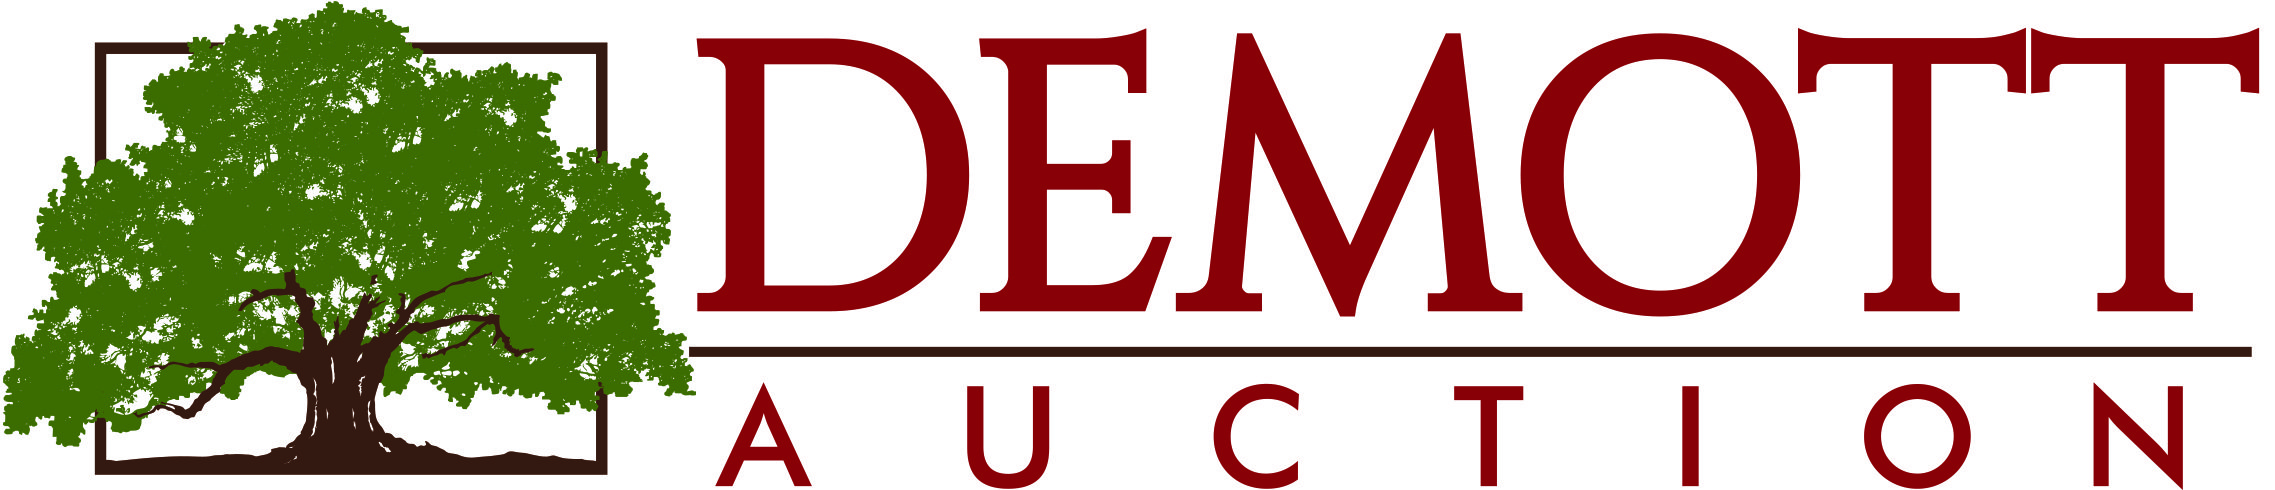 DeMott Auction Company Inc